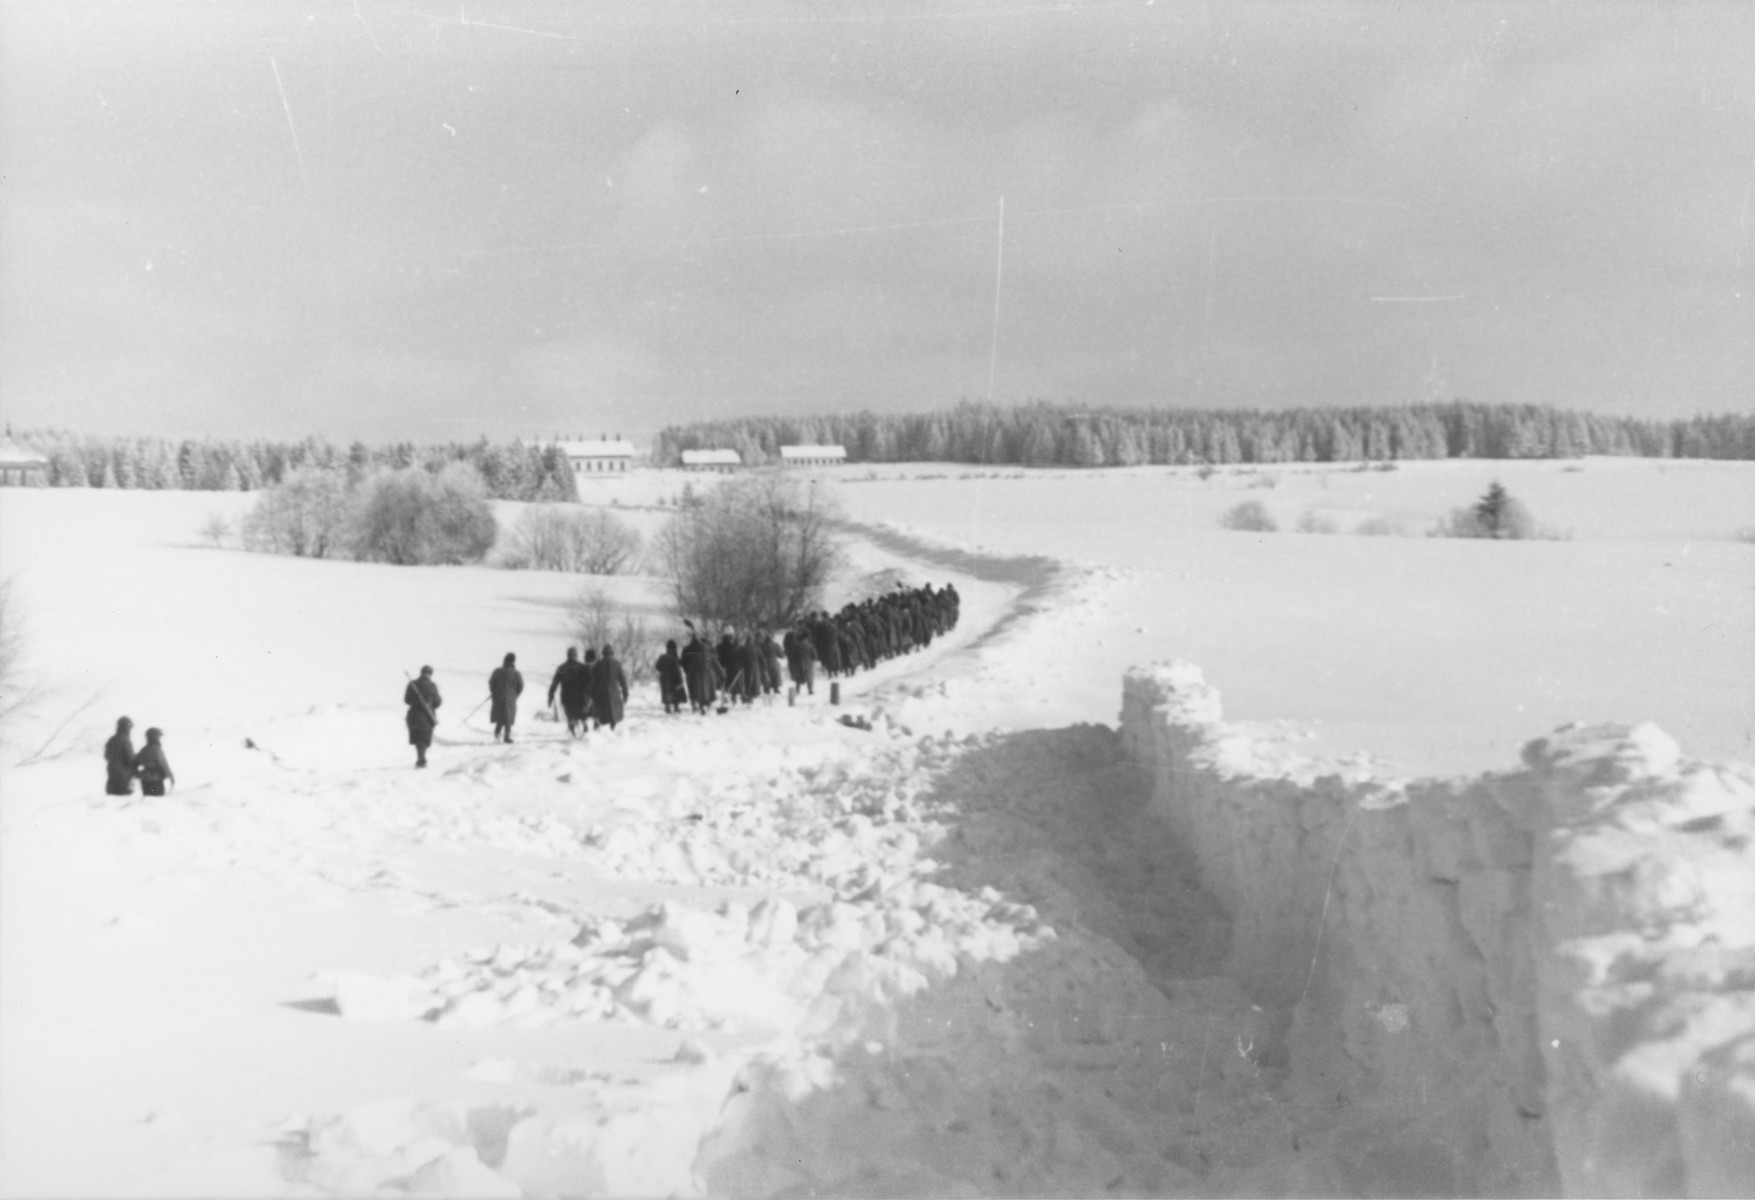 In the foreground stands a snow barricade built by Jewish conscripts in Company 108/57 of the Hungarian Labor Service to prevent snow from drifting onto a road.  In the background, the Company is returning to the camp for the day.